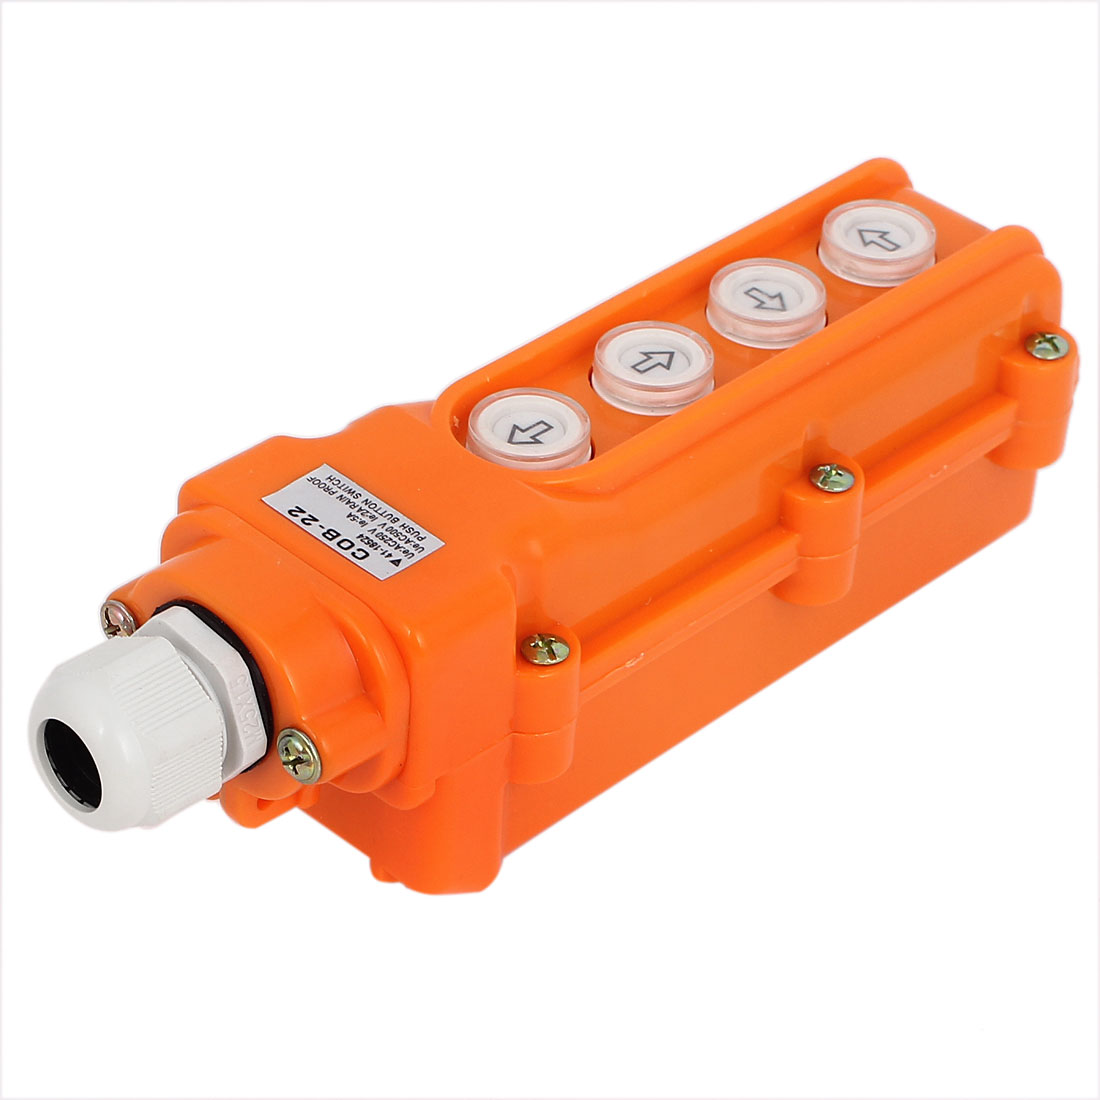 AC 250V 5A AC500V 2A 4 Ways Up Down Left Right Hoist Crane Push Button Pushbutton Switch Control Station